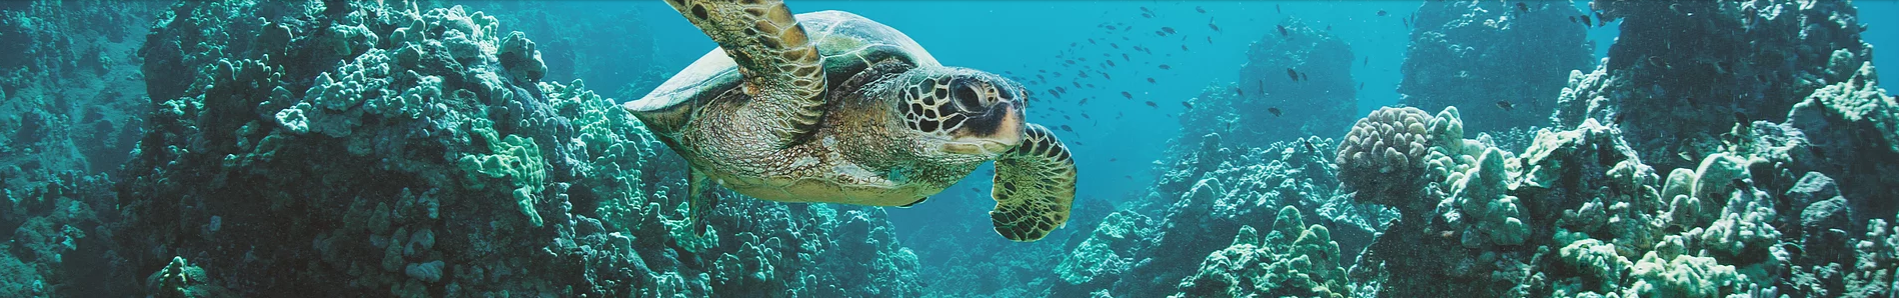 turtle_in_the_sea